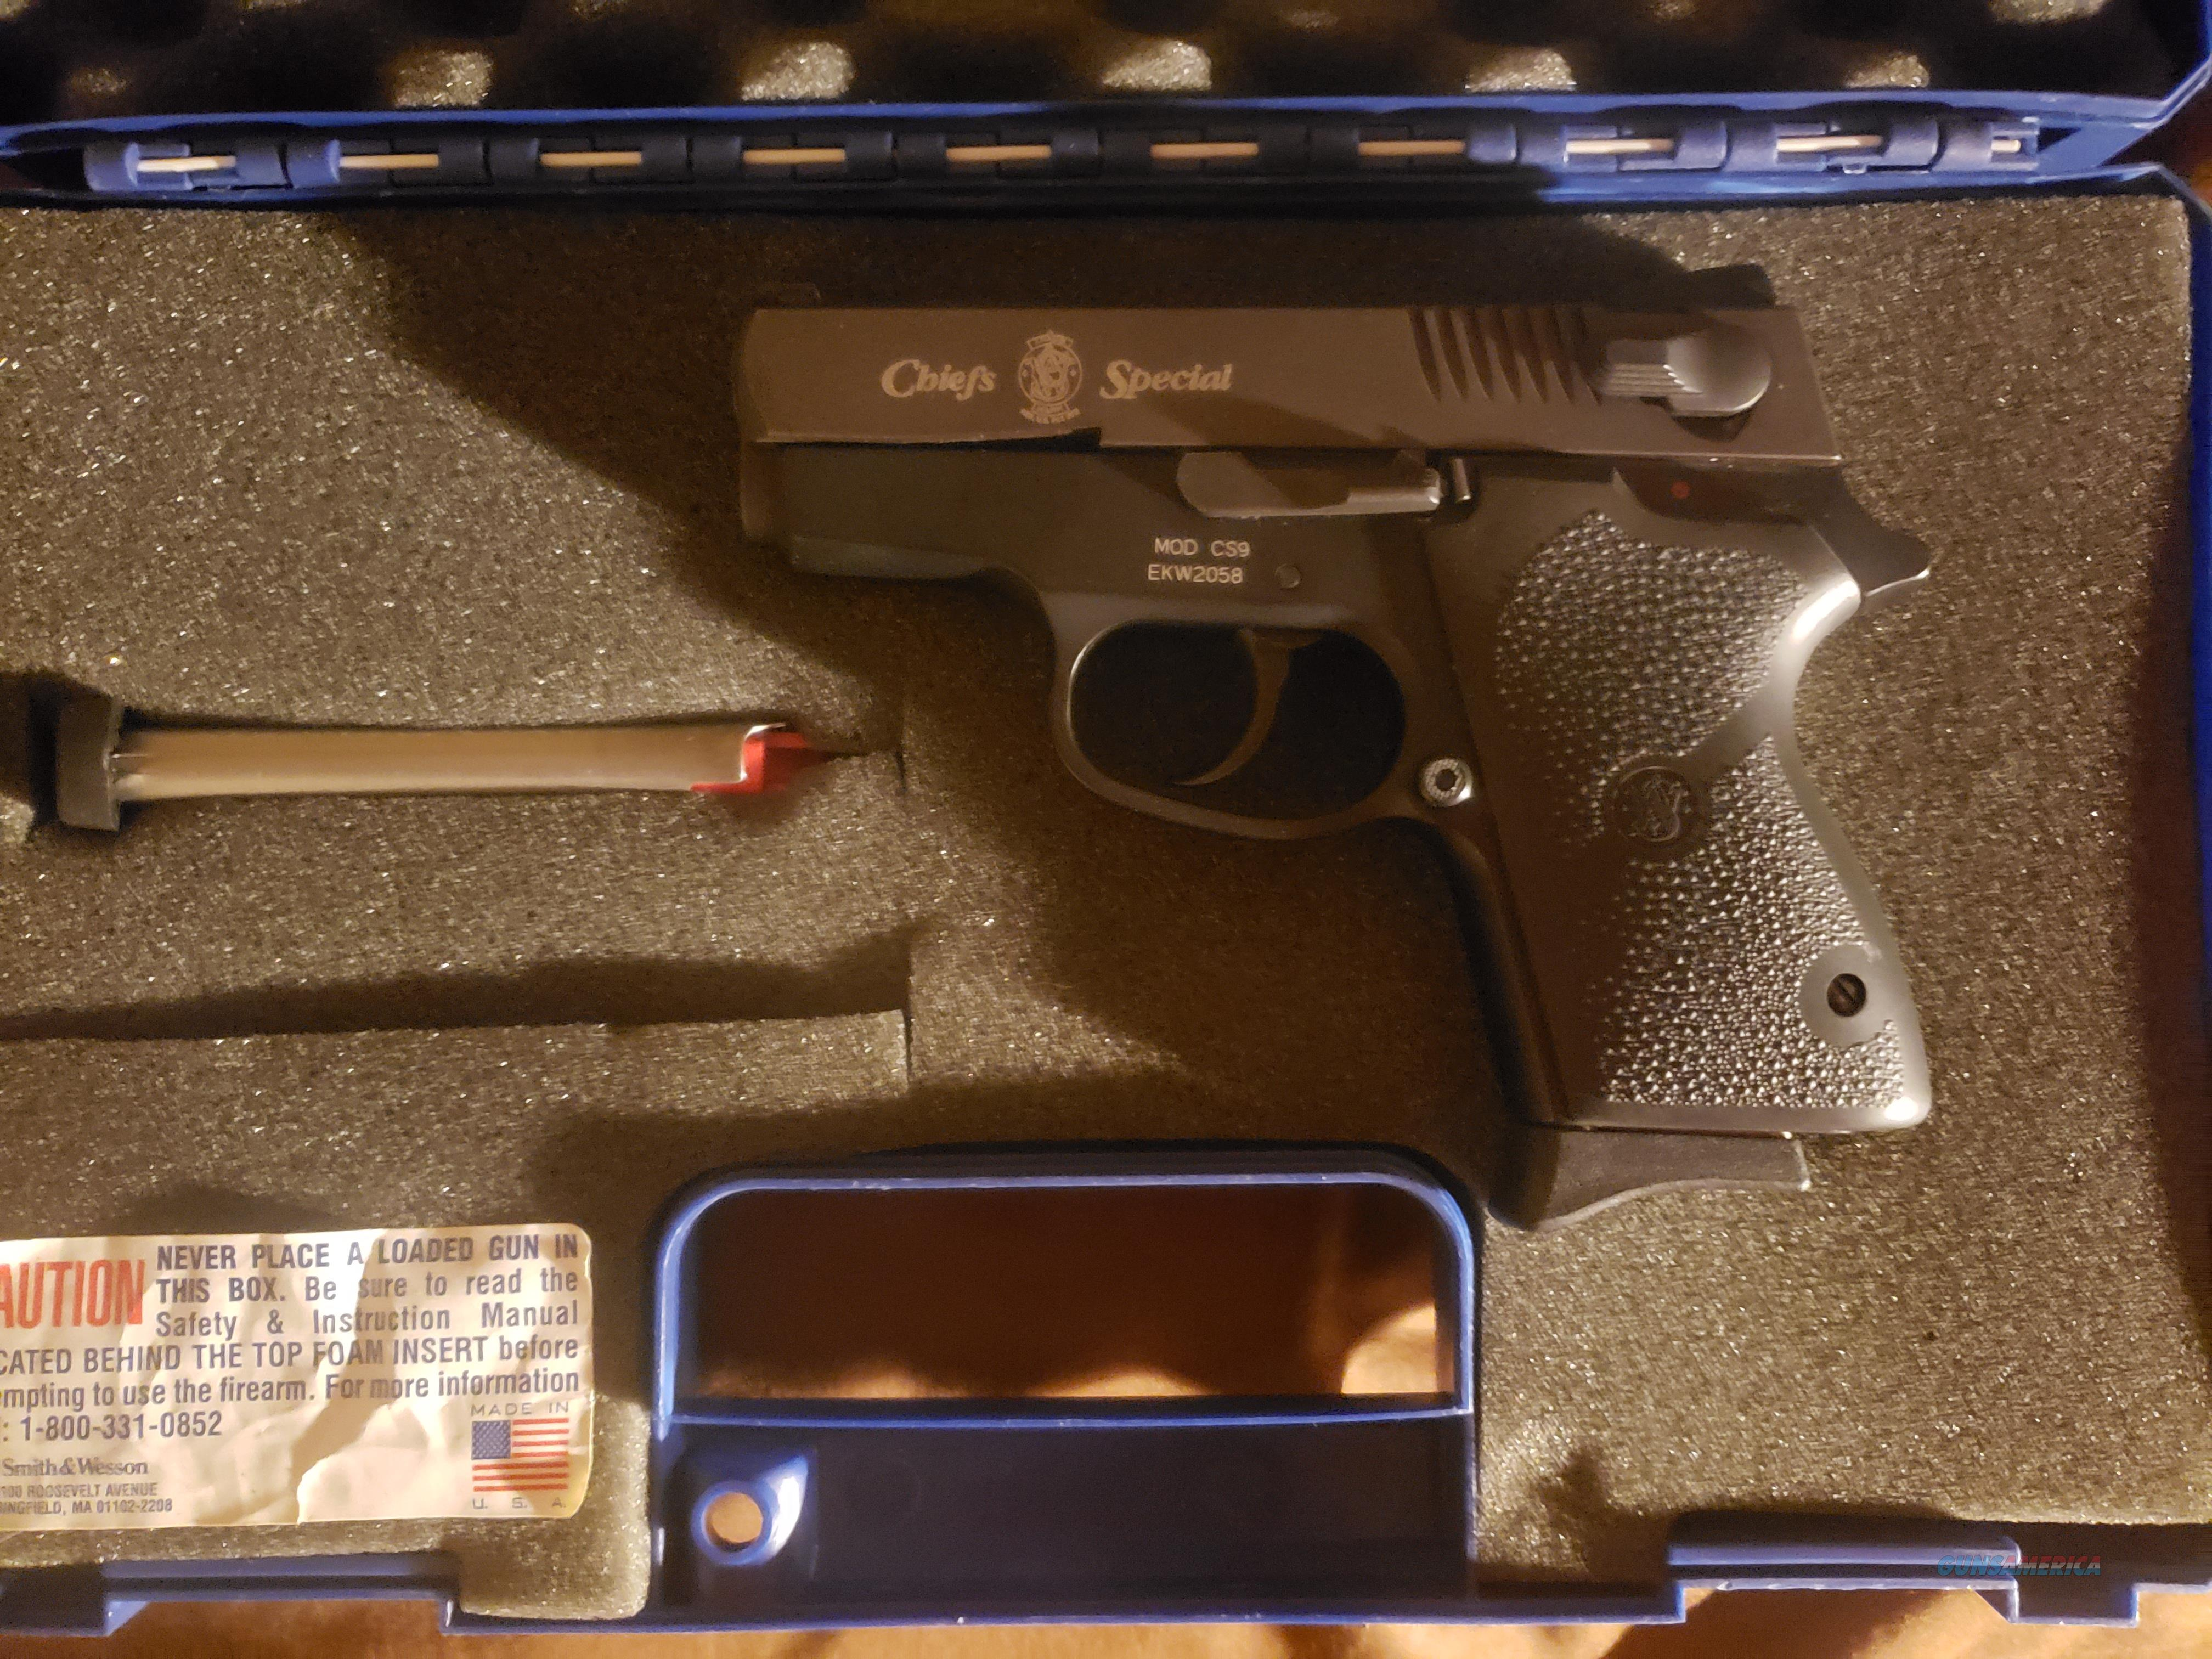 99% Smith and wesson cs9 9mm  Guns > Pistols > Smith & Wesson Pistols - Autos > Alloy Frame